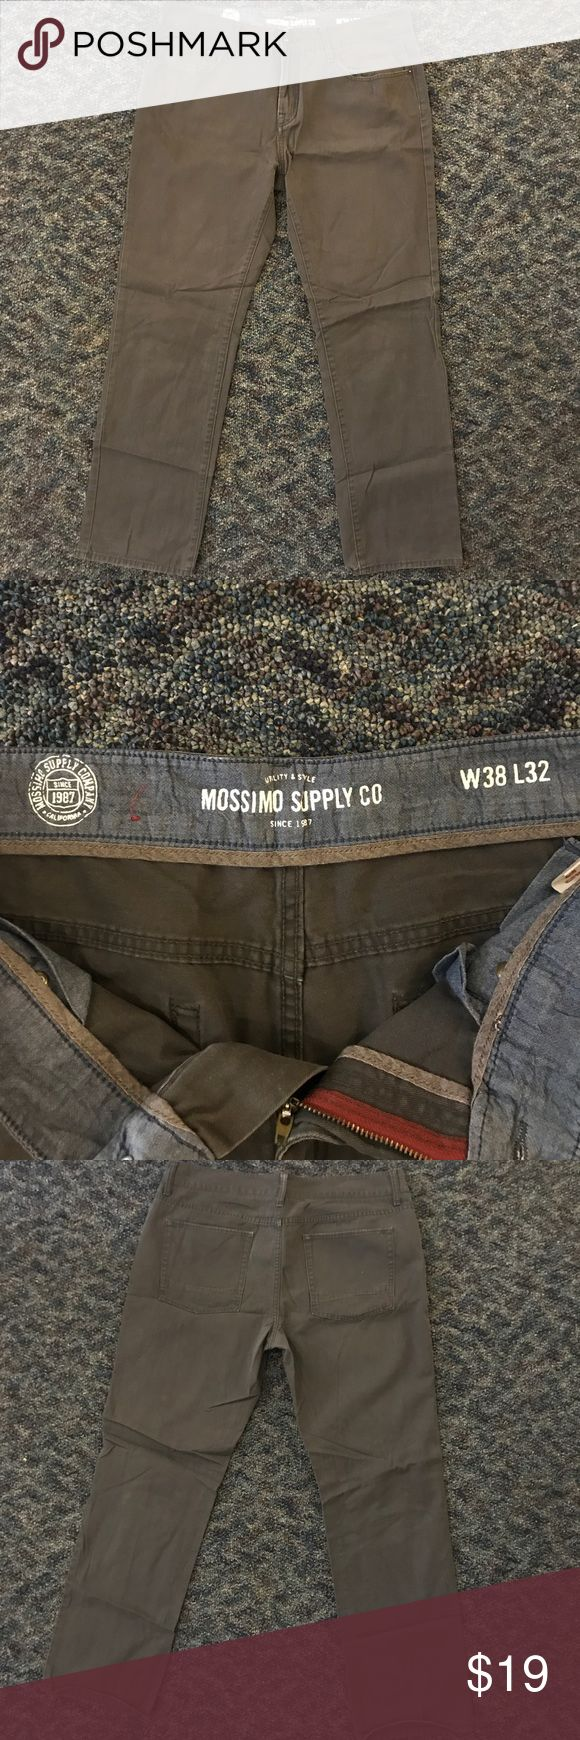 Mossimo Supply Co. Great quality pair of grey pants. No flaws, zippers work perfectly, no holes in pockets. Perfect to be worn for anything.  MOSSIMO SUPPLY CO., VANS, ADIDAS, NIKE, VINTAGE VINEYARDS, STARTER, CONVERSE, AIR JORDAN, J. CREW, TOMMY HILFIGER, THE NORTH FACE, DITCH PLAINS, CHAMPION, LACOSTE, BLAC LABEL, RALPH LAUREN, REEBOK, OLD NAVY, AMERICAN APPAREL, NAUTICA, ABERCROMBIE & FITCH, OBEY, FOREVER 21, SKULLCANDY, SUPREME, PACSUN, POLO, LEVI'S Mossimo Supply Co. Pants Dress